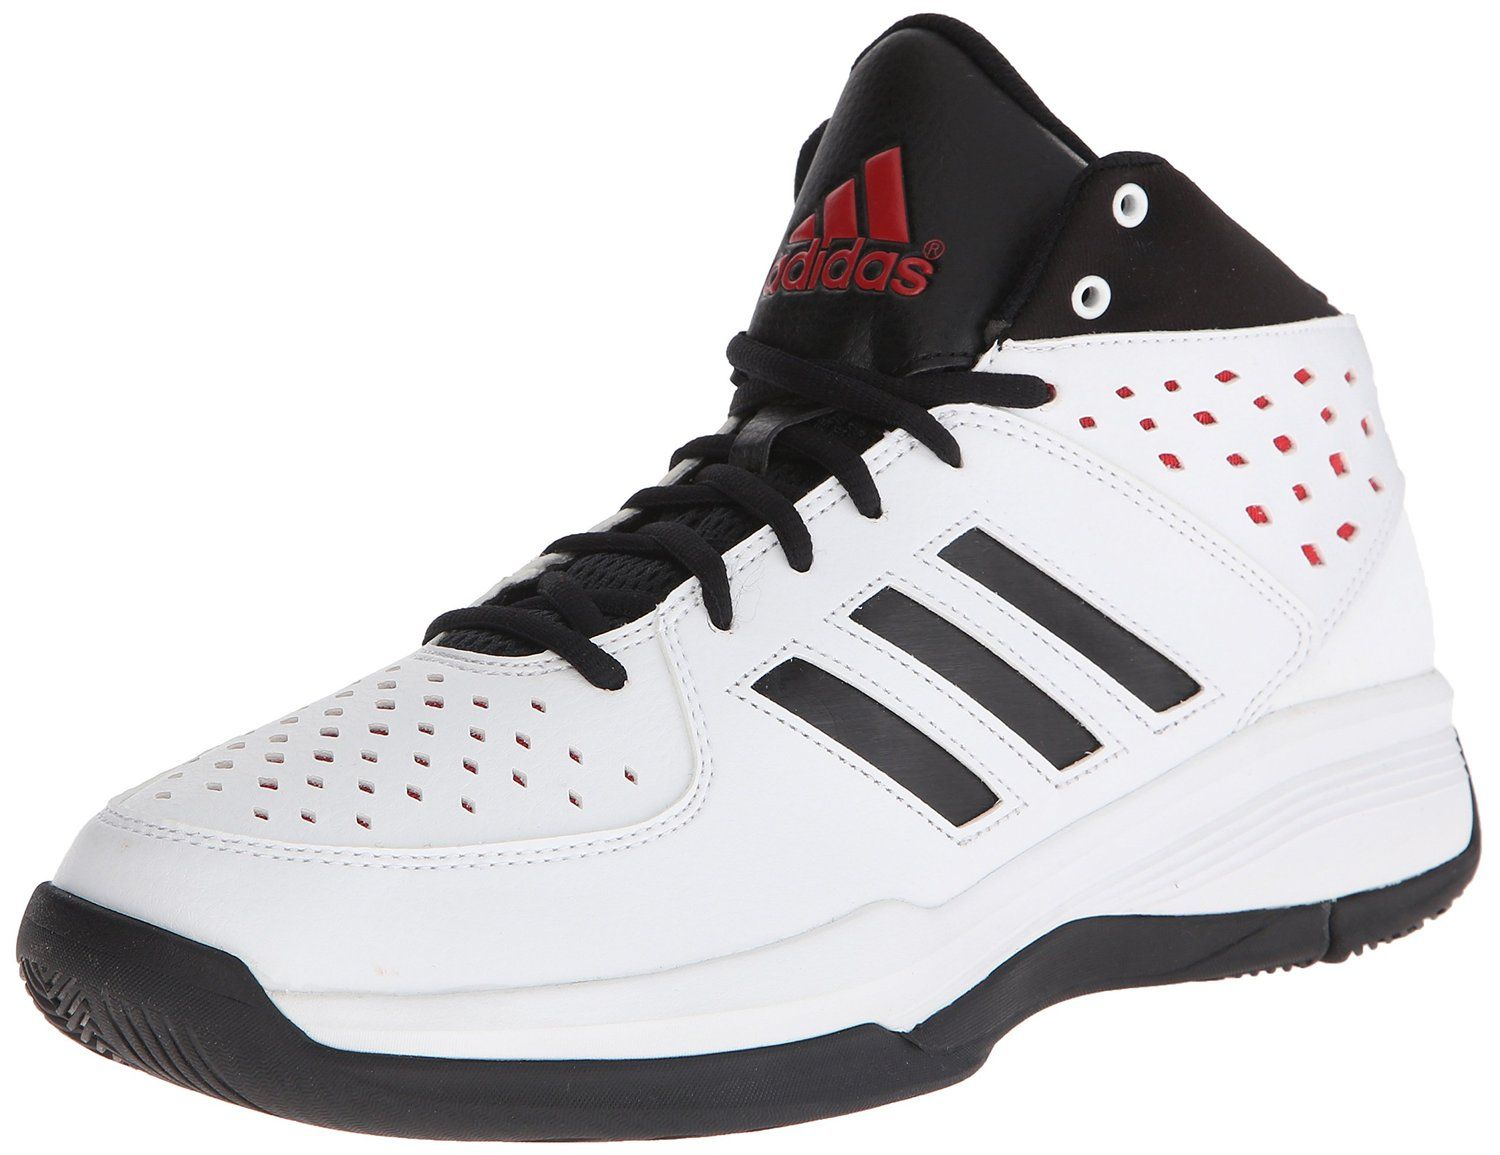 Best Basketball Shoes Under 50 Dollars: adidas Court Fury